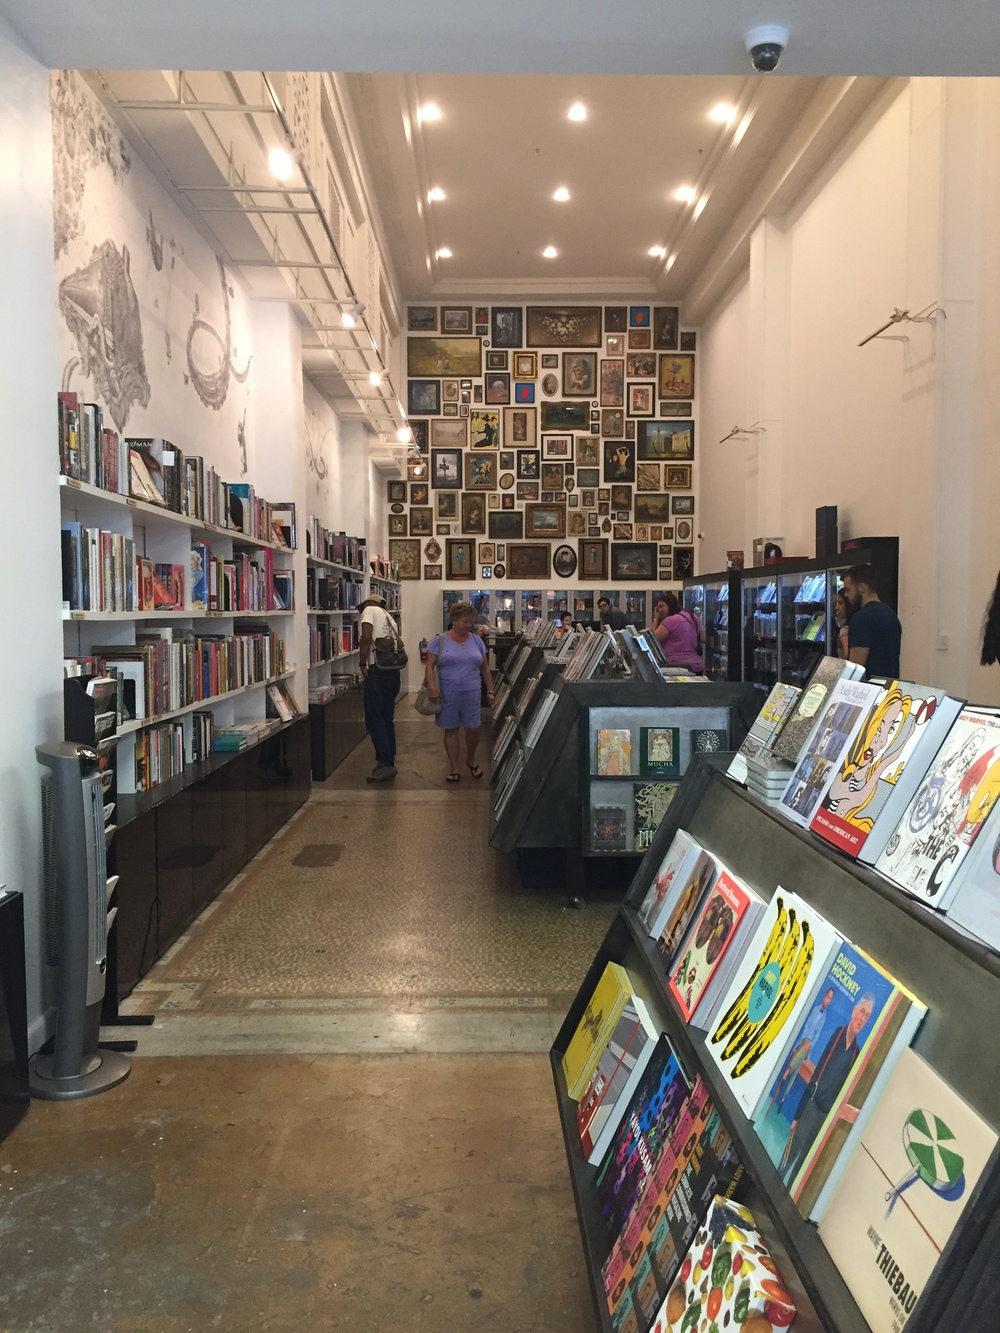 A visit to The Last Bookstore Arts & Rare Books Annex.